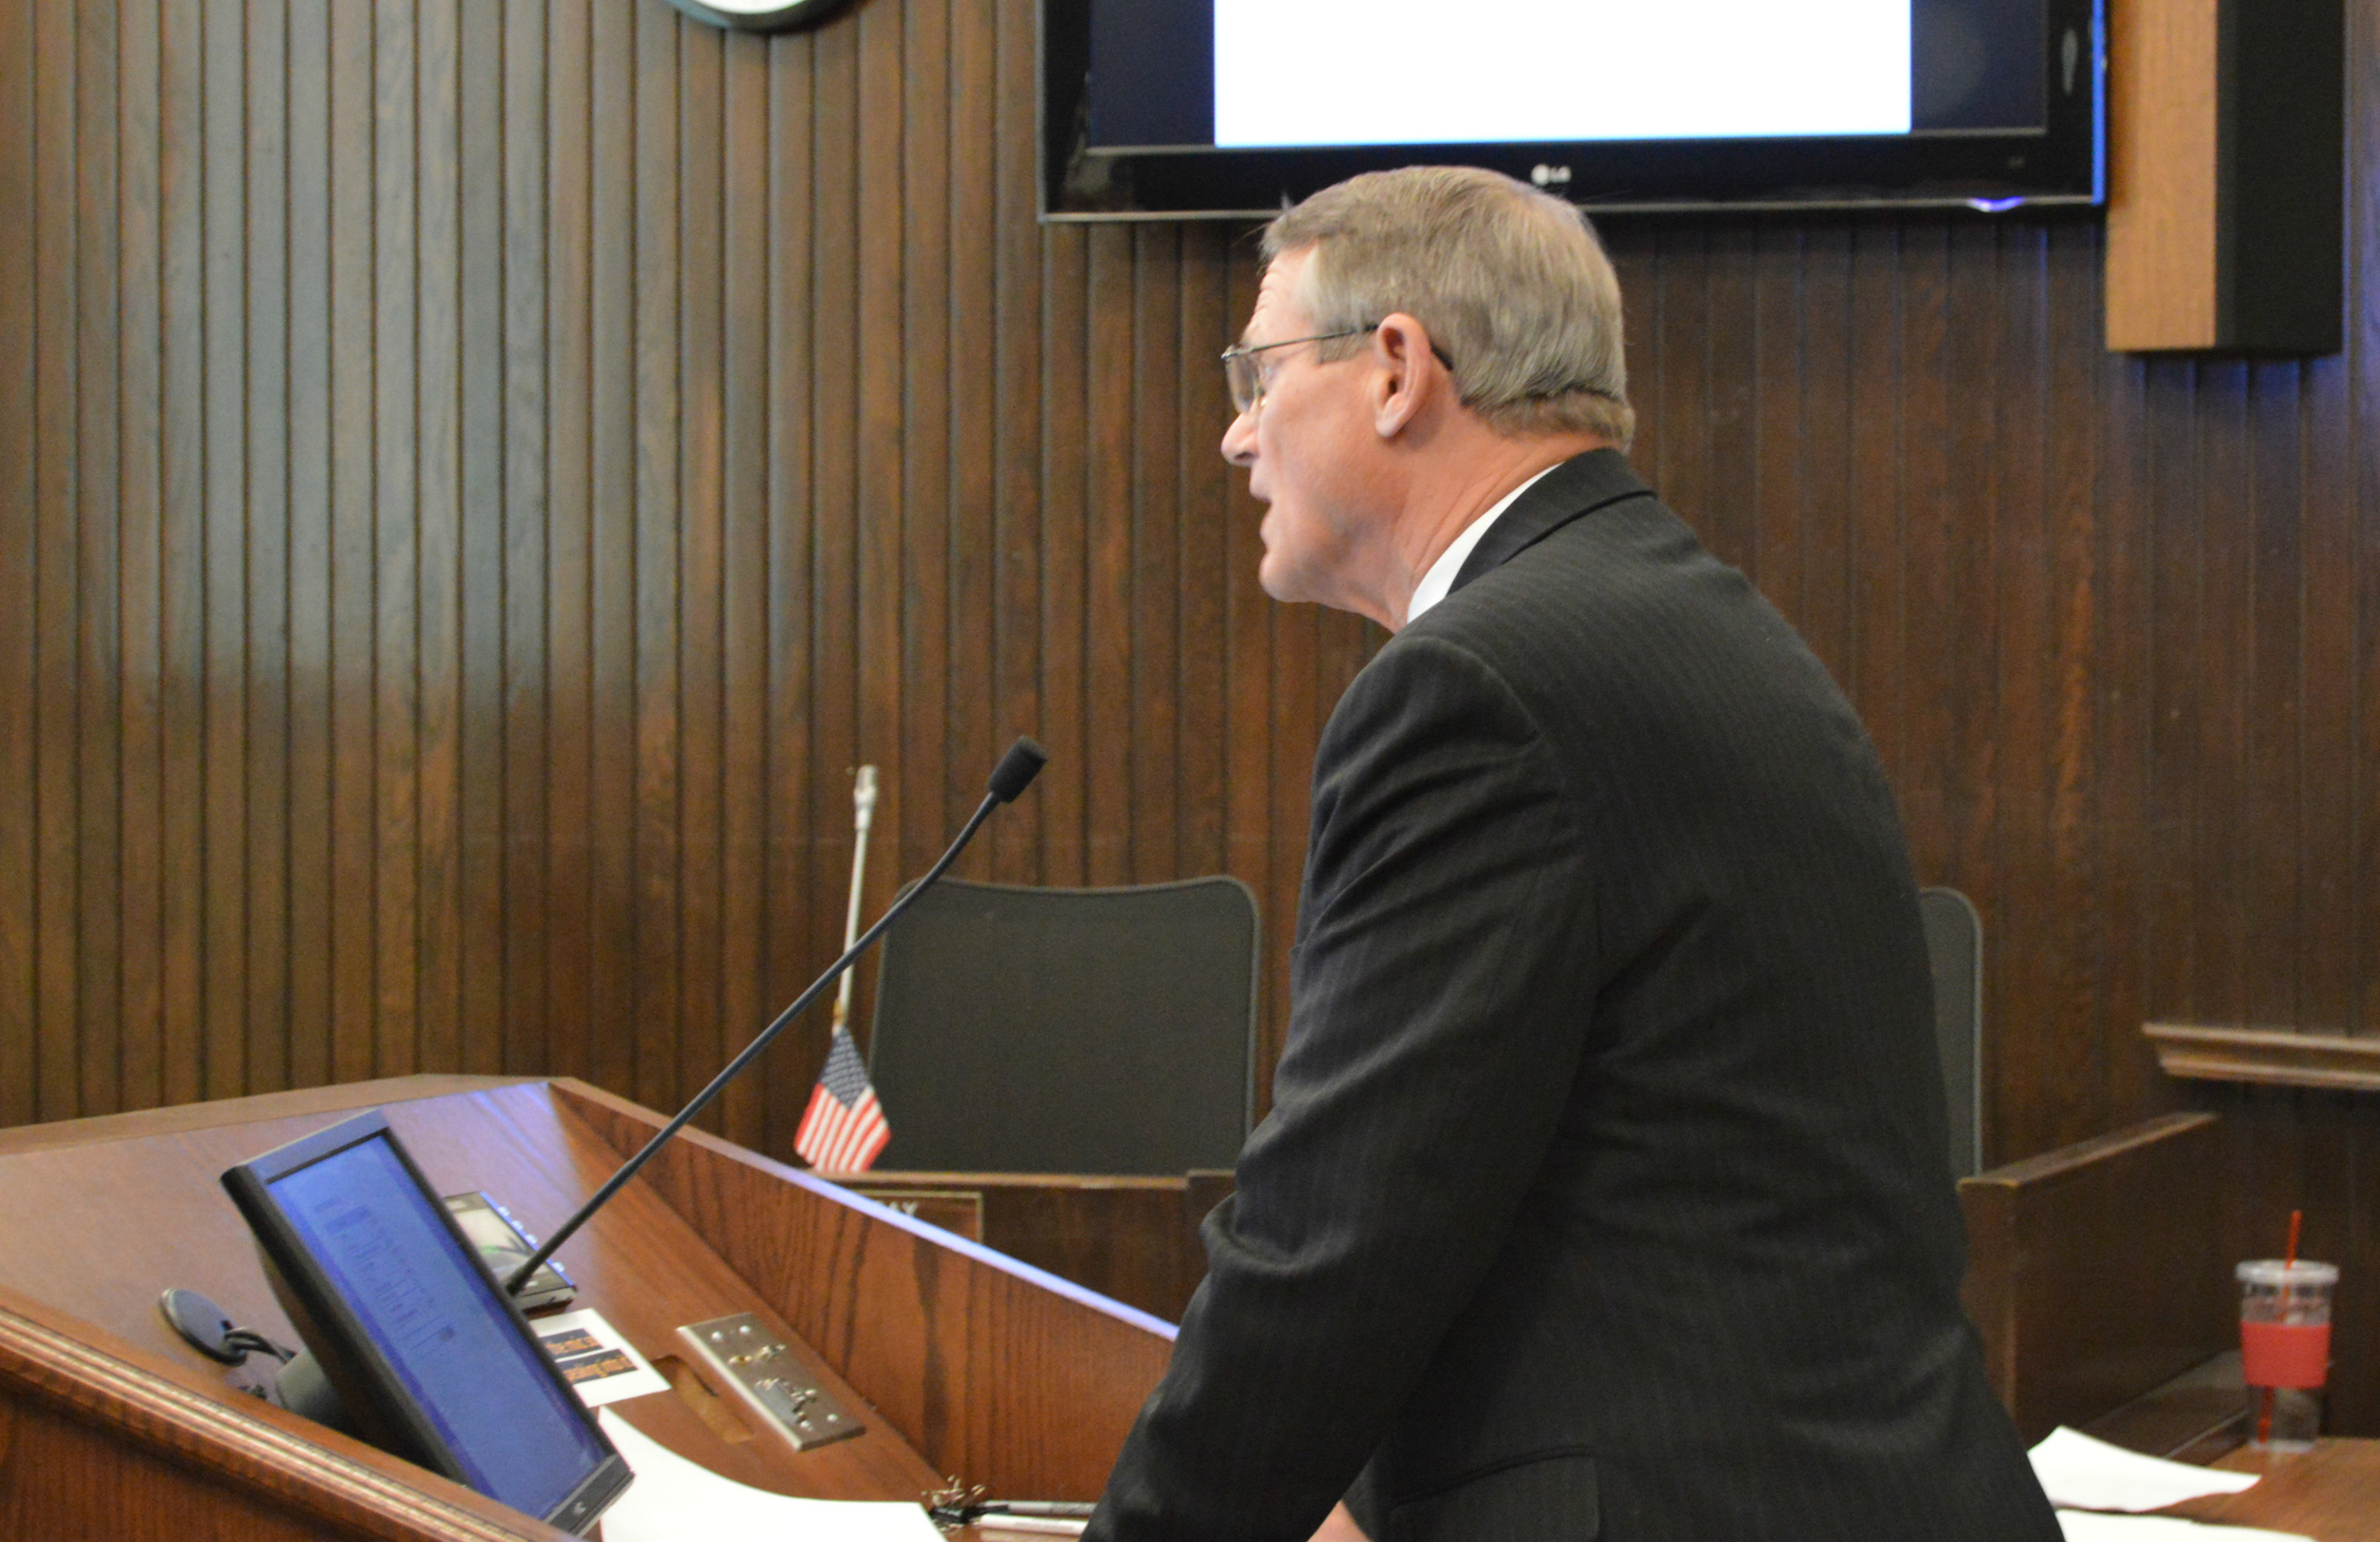 Interim City Manager Steve Rasmussen presented his proposed balanced City budget to Council members for further direction Monday night.